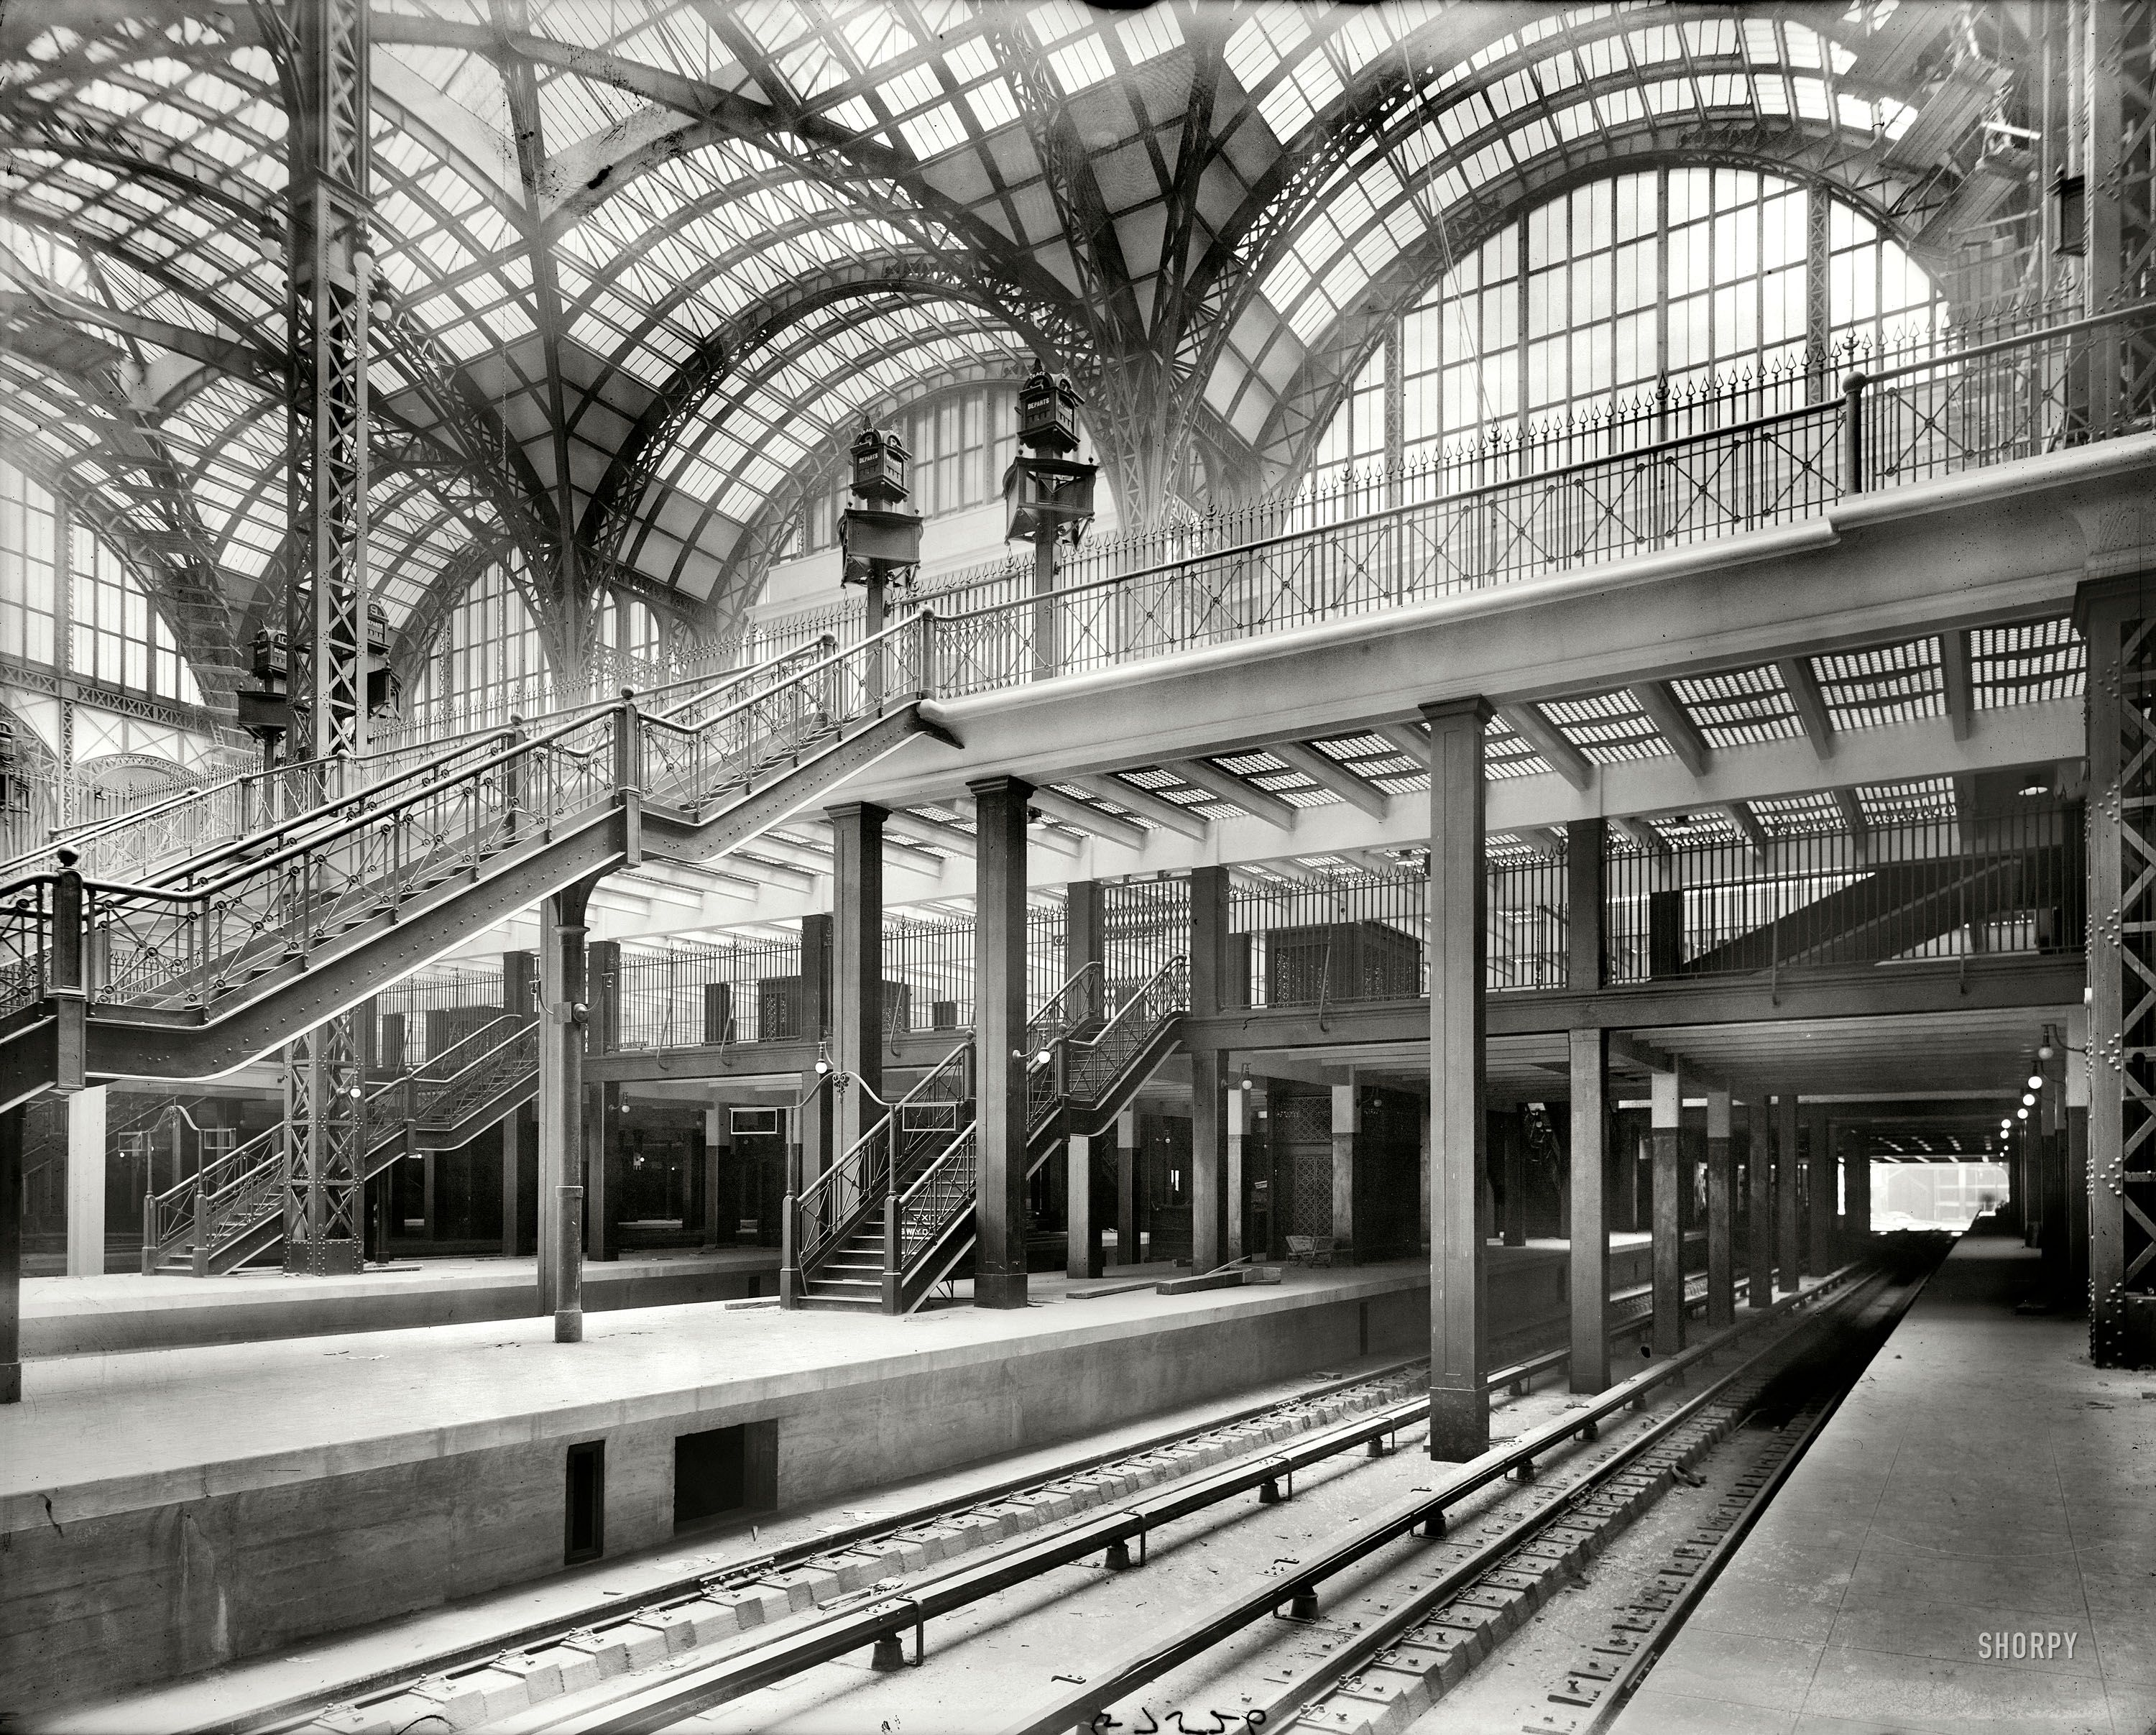 Shorpy Historical Photo Archive Penn Station 1910 New York Circa 1910 Pennsylvania Station Old Train Station Penn Station Nyc Shorpy Historical Photos